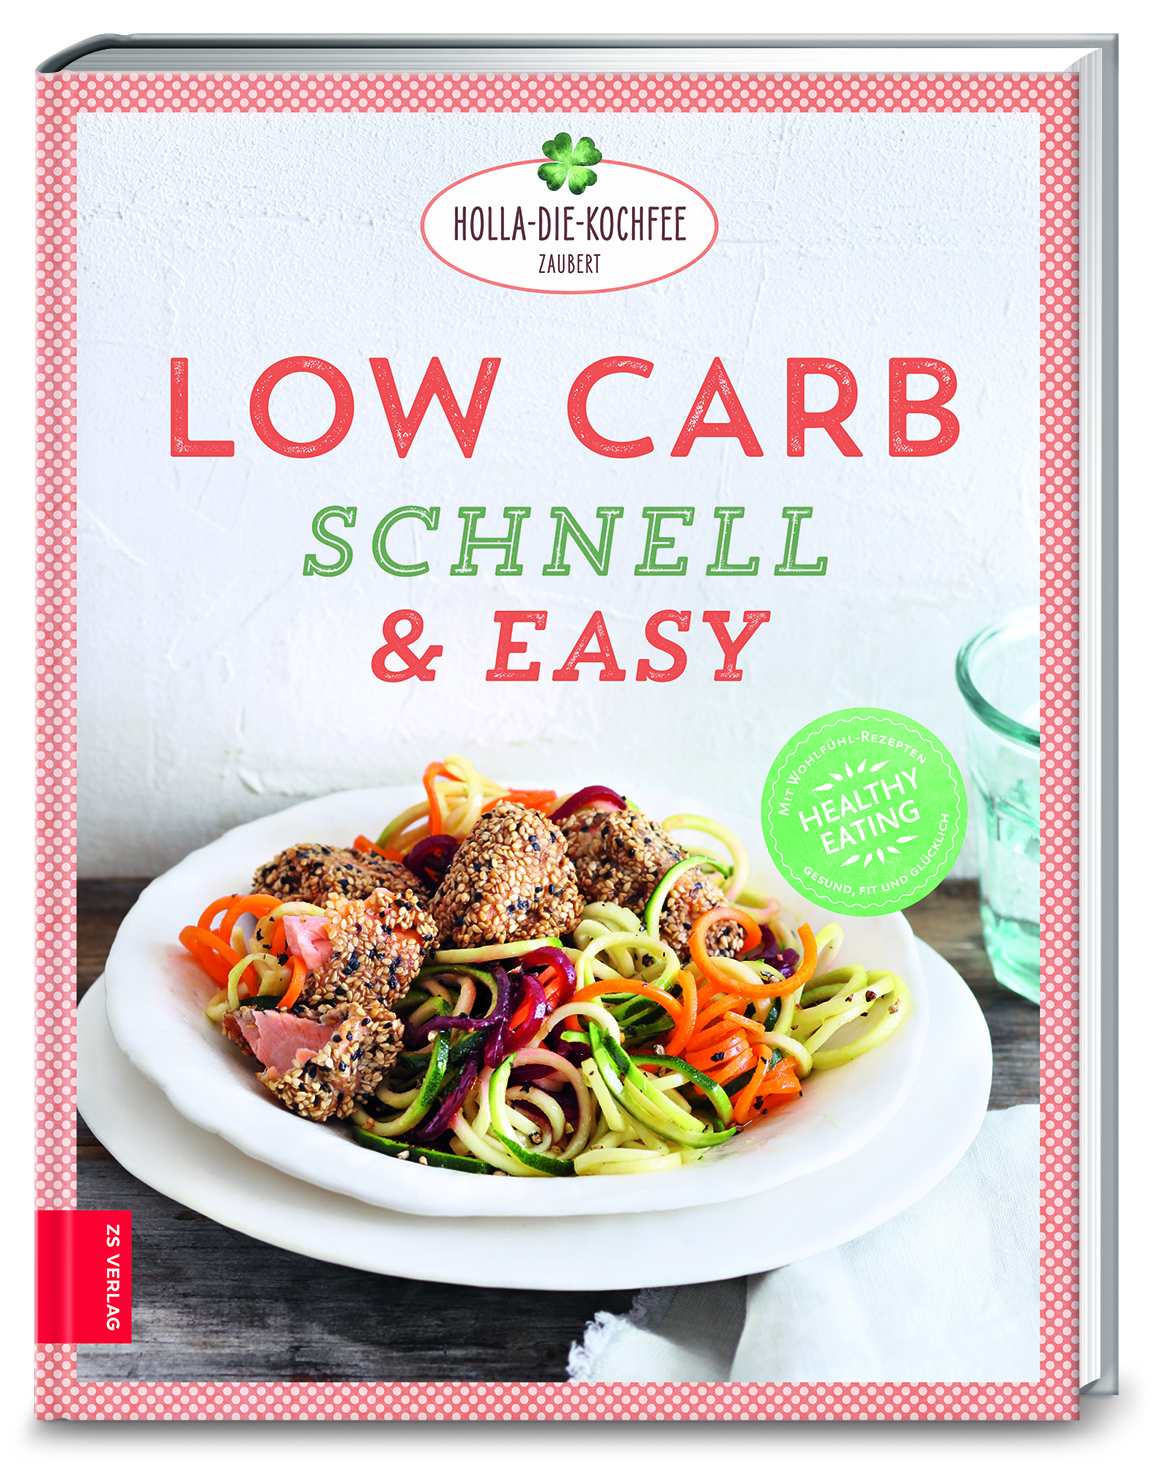 Low Carb schnell & easy Buch